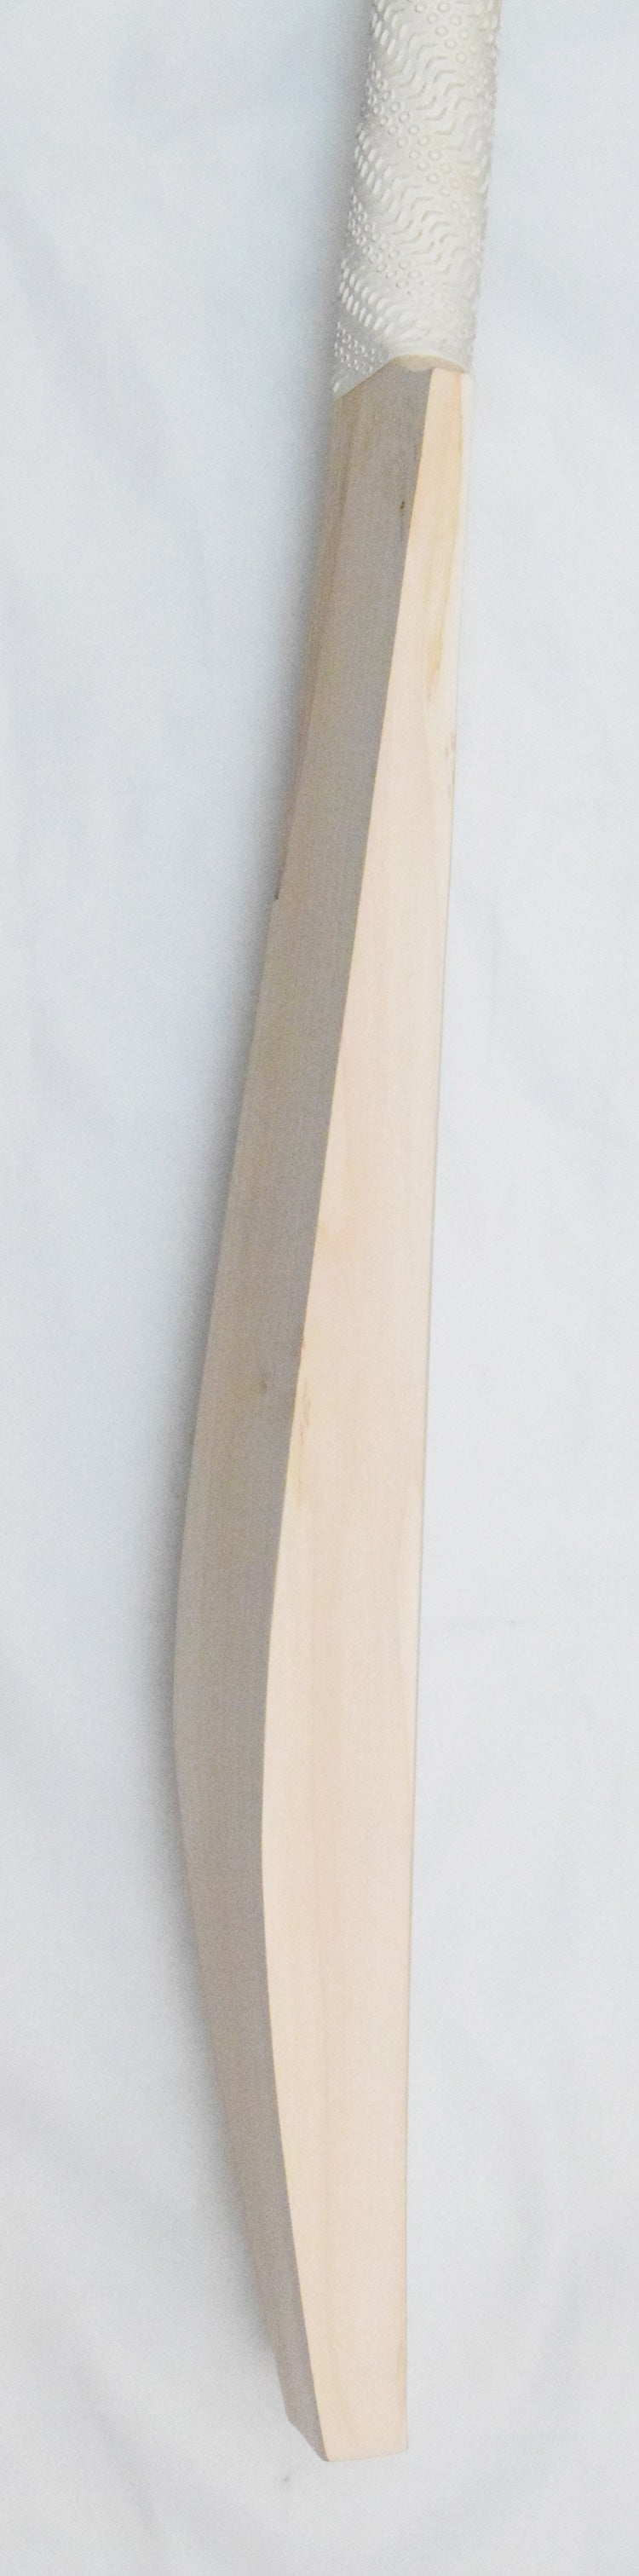 Grade 2 English Willow Custom Bat